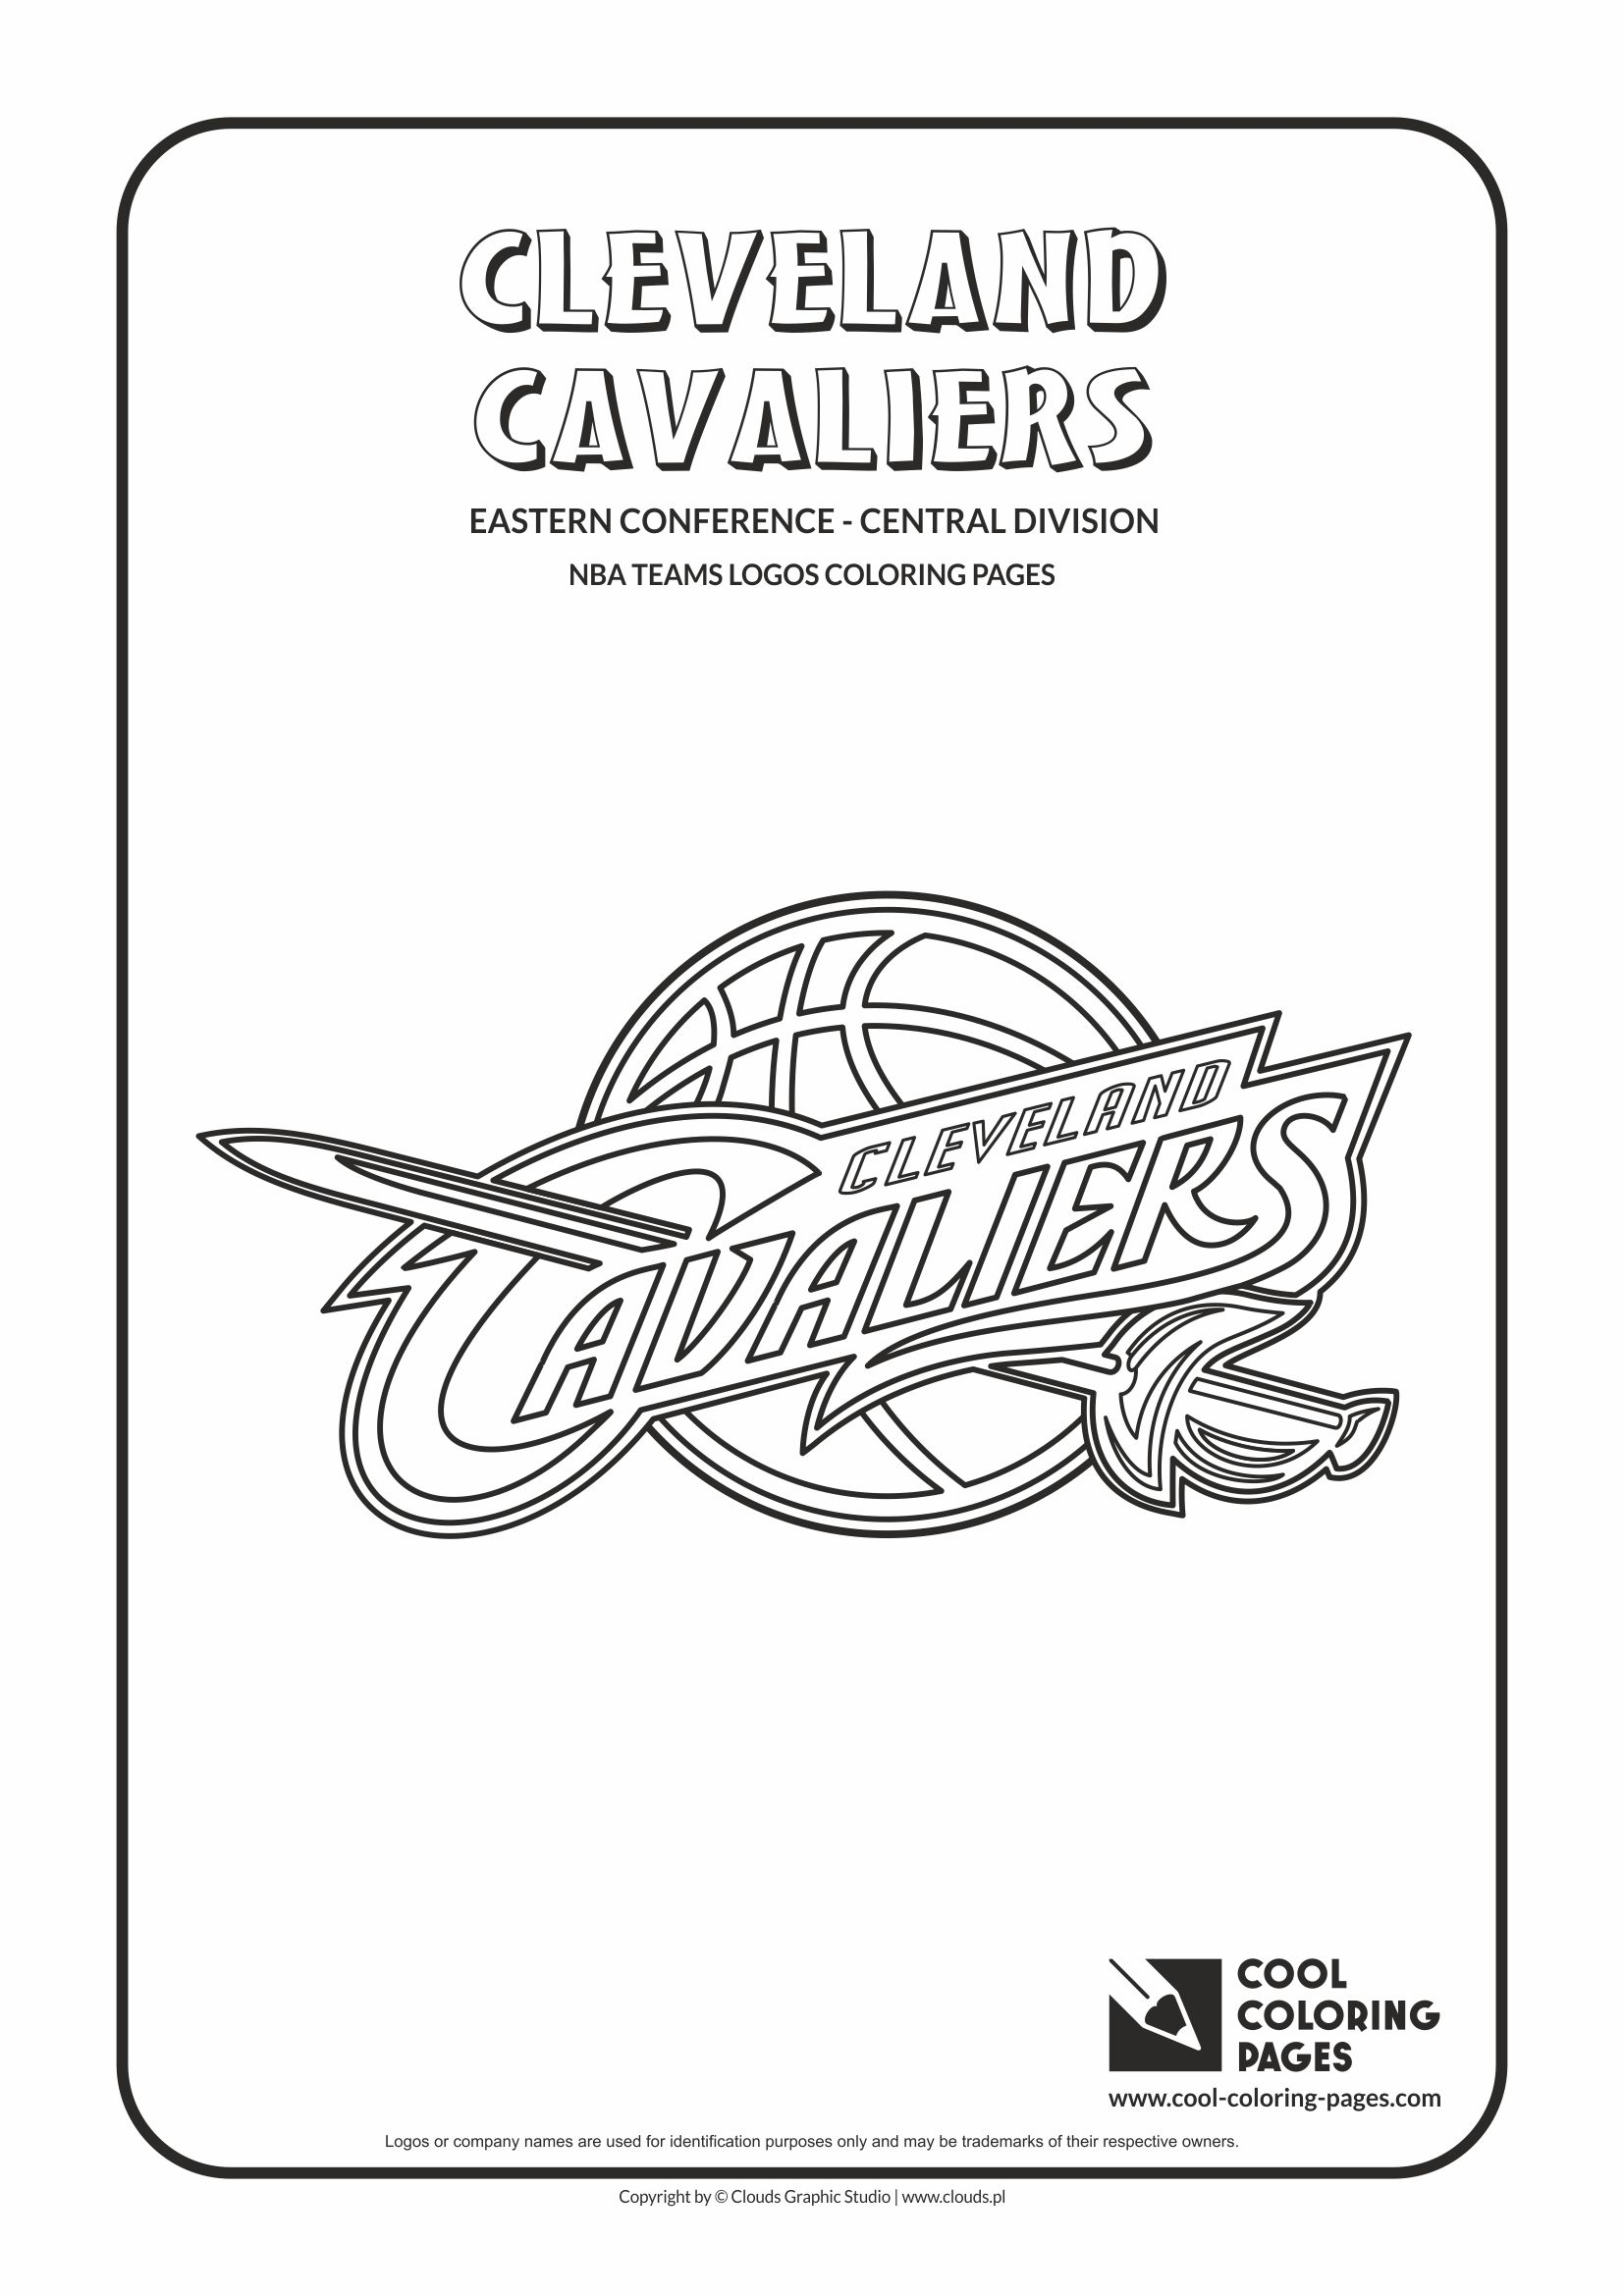 Cool Coloring Pages Cleveland Cavaliers Nba Basketball Teams Logos